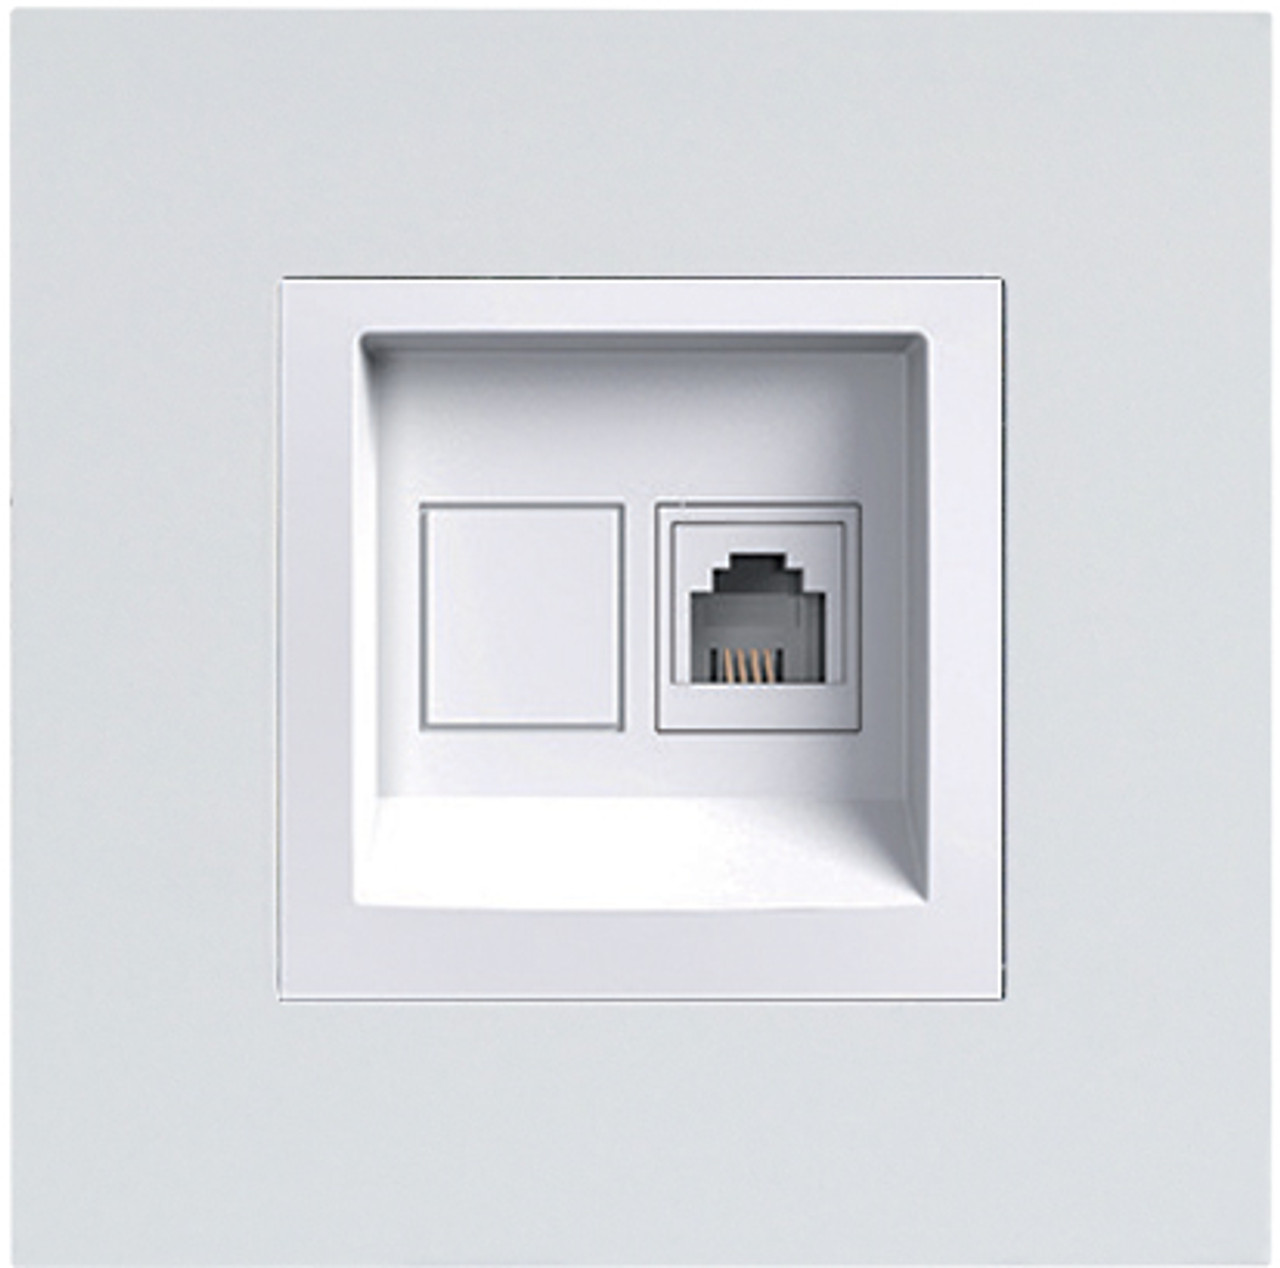 ASF GRAY 1*RJ45  WITHOUT FRAME